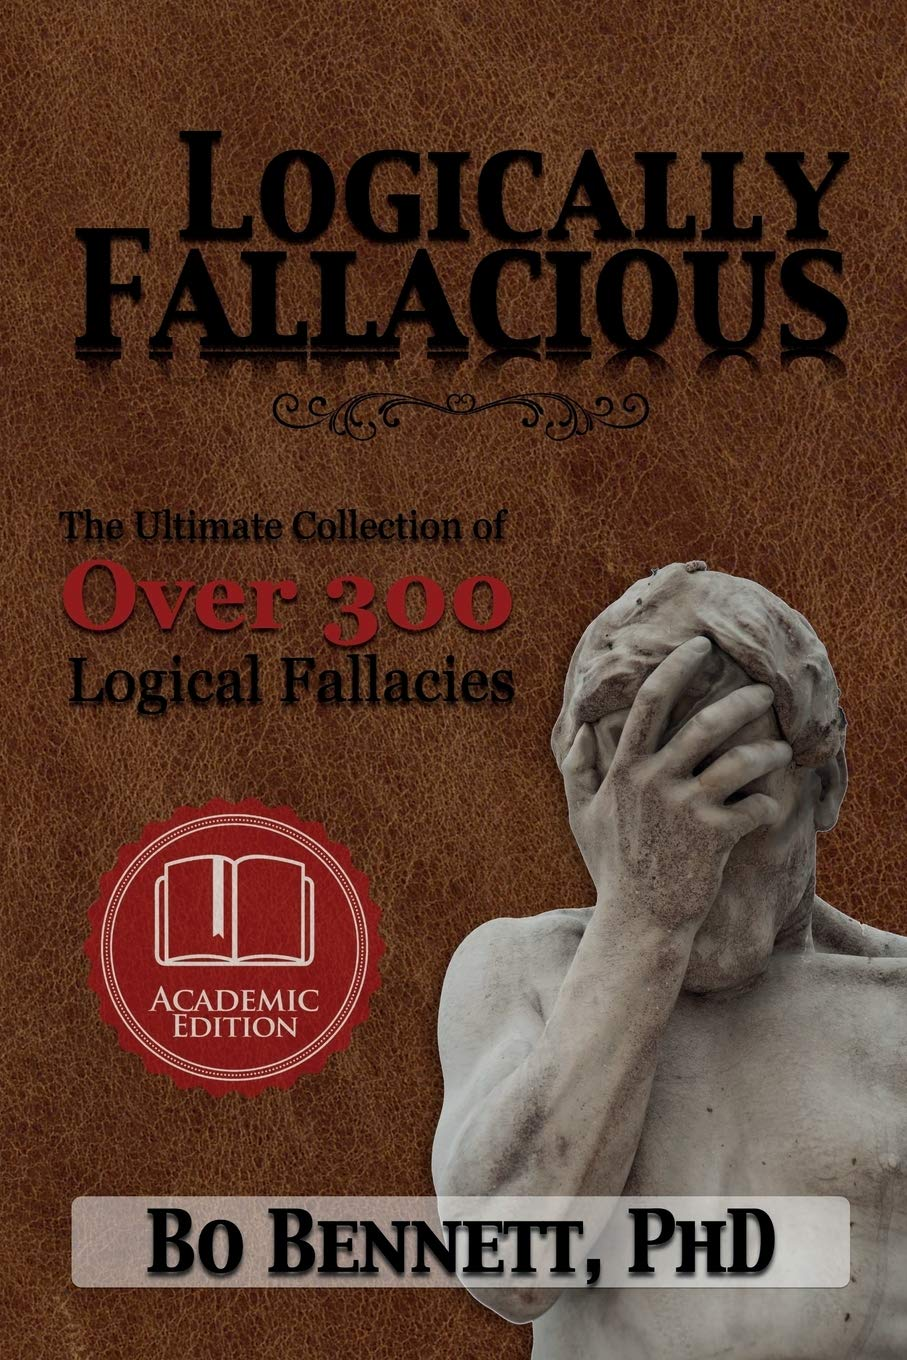 Logically Fallacious  The Ultimate Collection Of Over 300 Logical Fallacies  Academic Edition